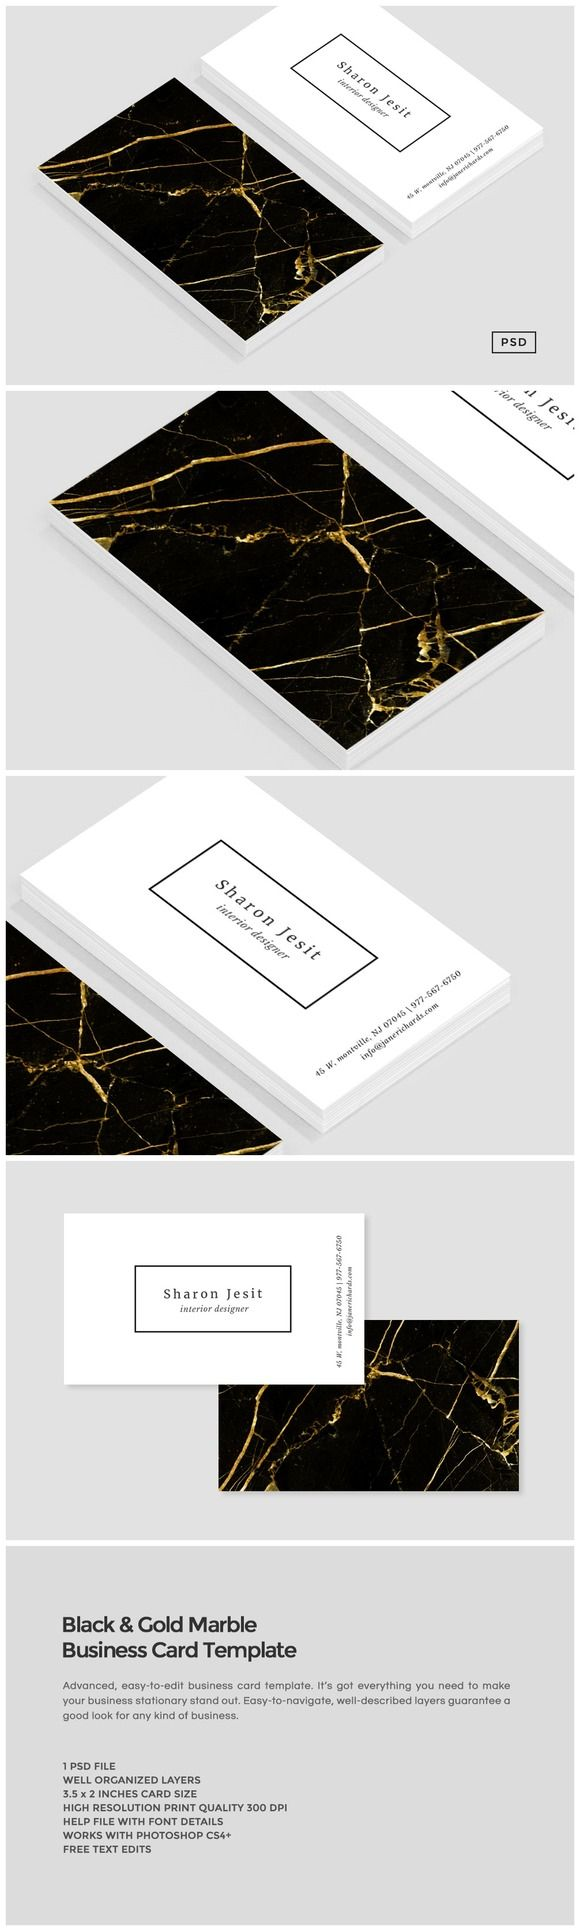 Black gold marble business card by design co on creative market black gold marble business card by design co on creative market magicingreecefo Images